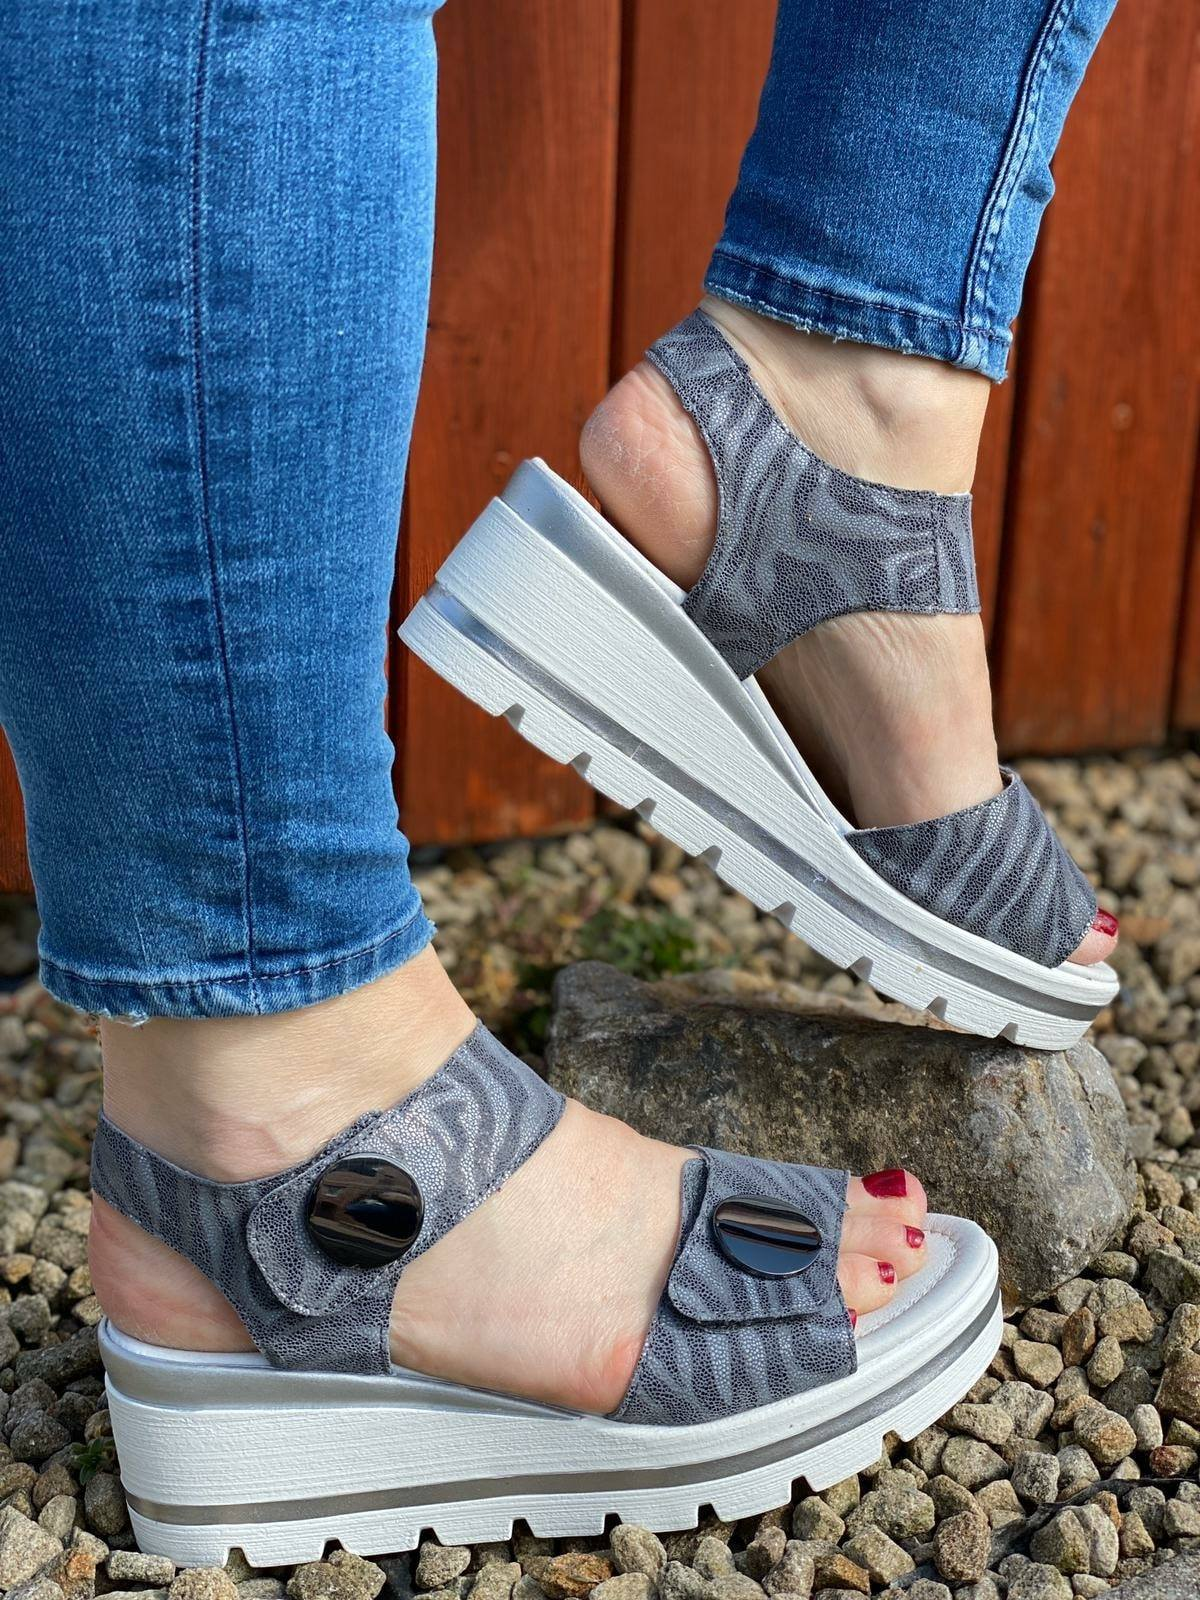 Can Shoes be Comfortable and Cute at the same time?